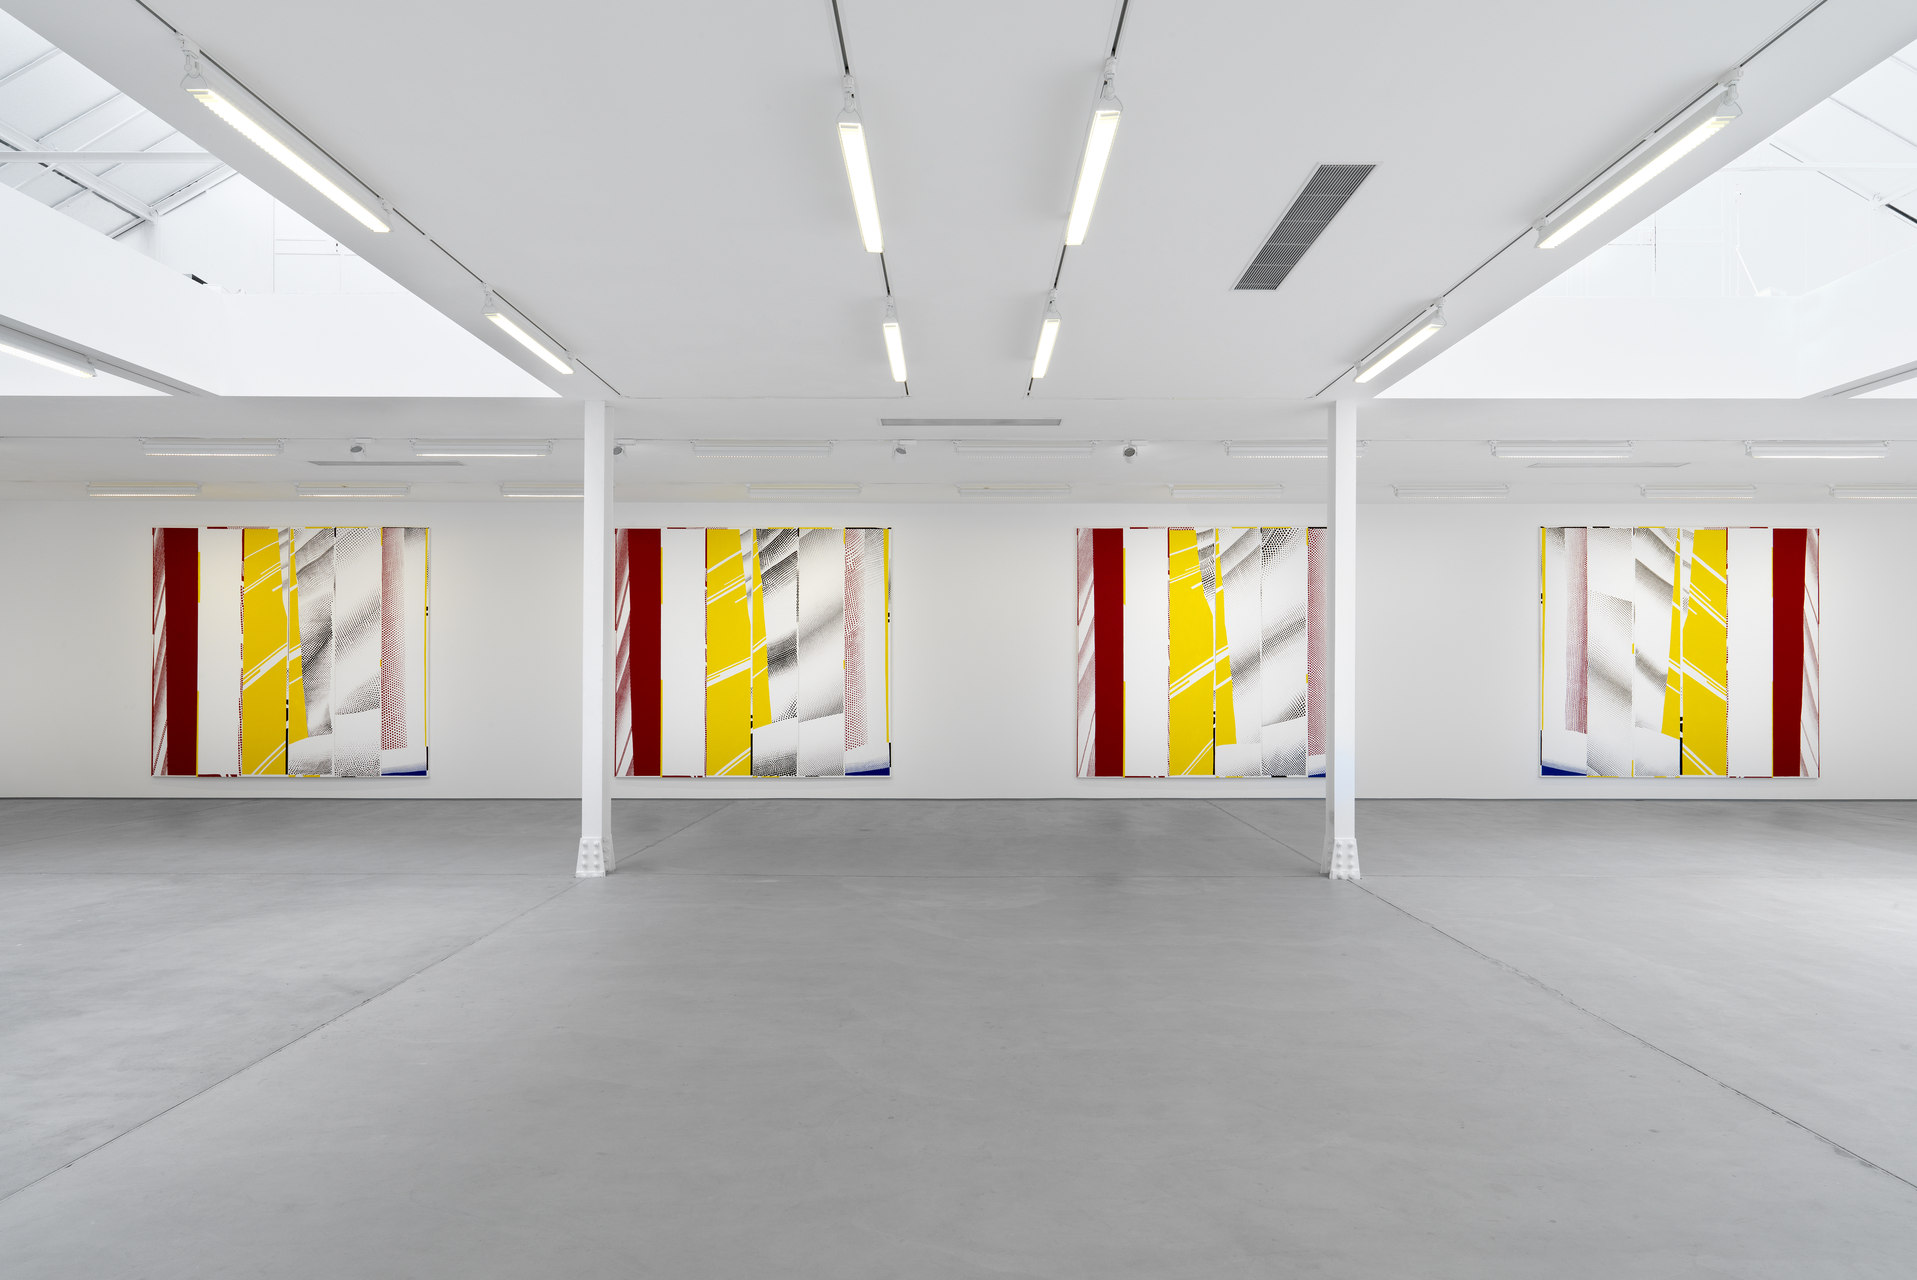 004_Installation view_Jonathan Horowitz_3048cm Paintings_SCHQ_Kingly St_26 March-30 May 2015